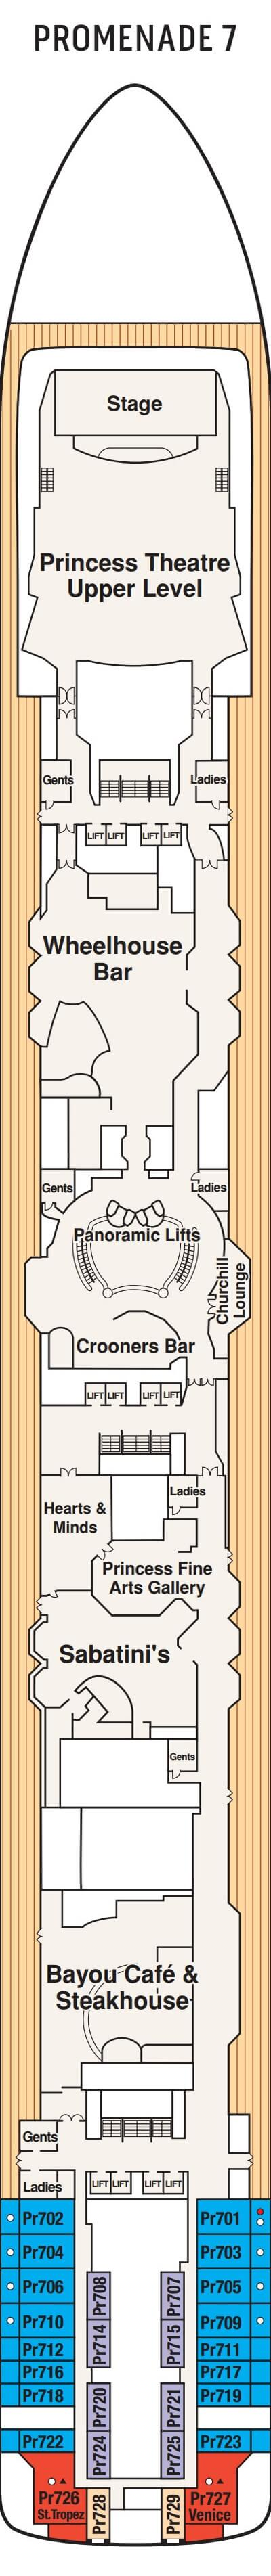 Island Princess Promenade Deck 7 layout